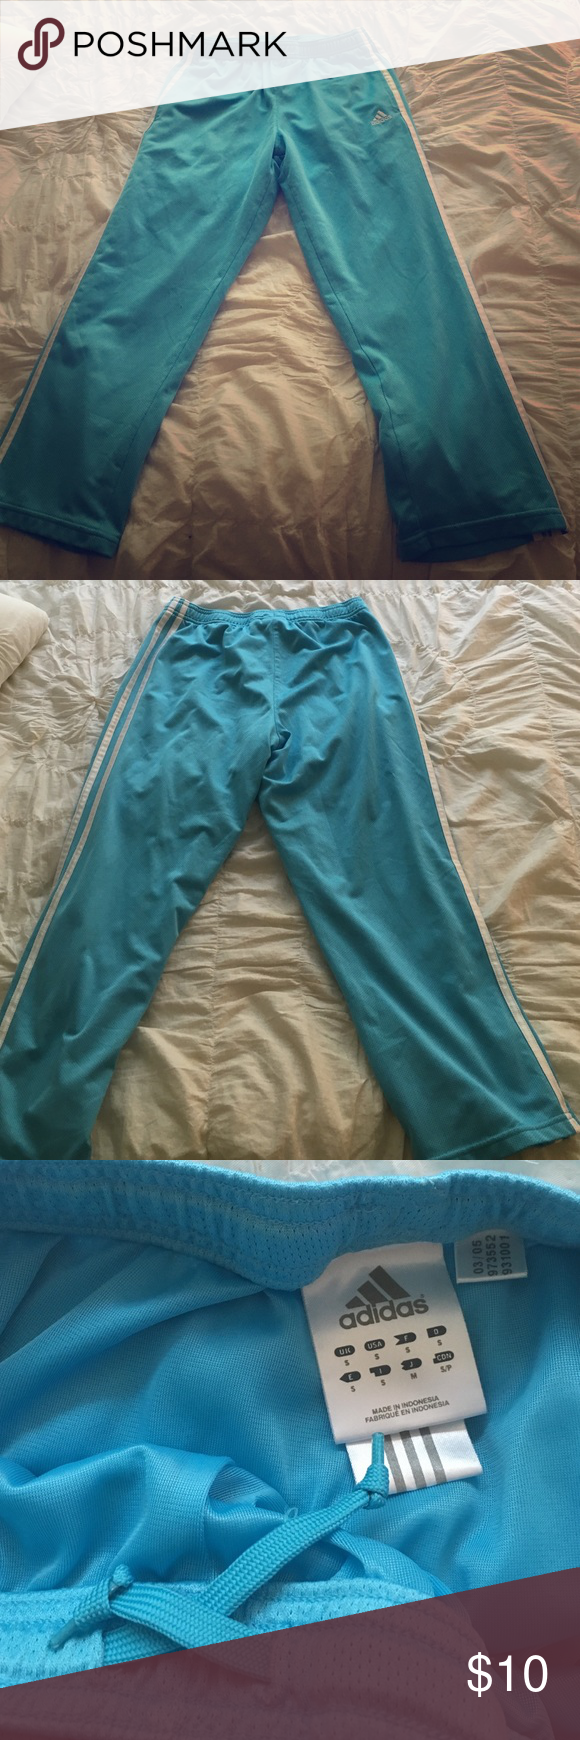 Adidas Baby Blue Capri Track Pants Adidas baby blue capri soccer track pants, size small. Ties at the waist! Adidas Pants Ankle & Cropped